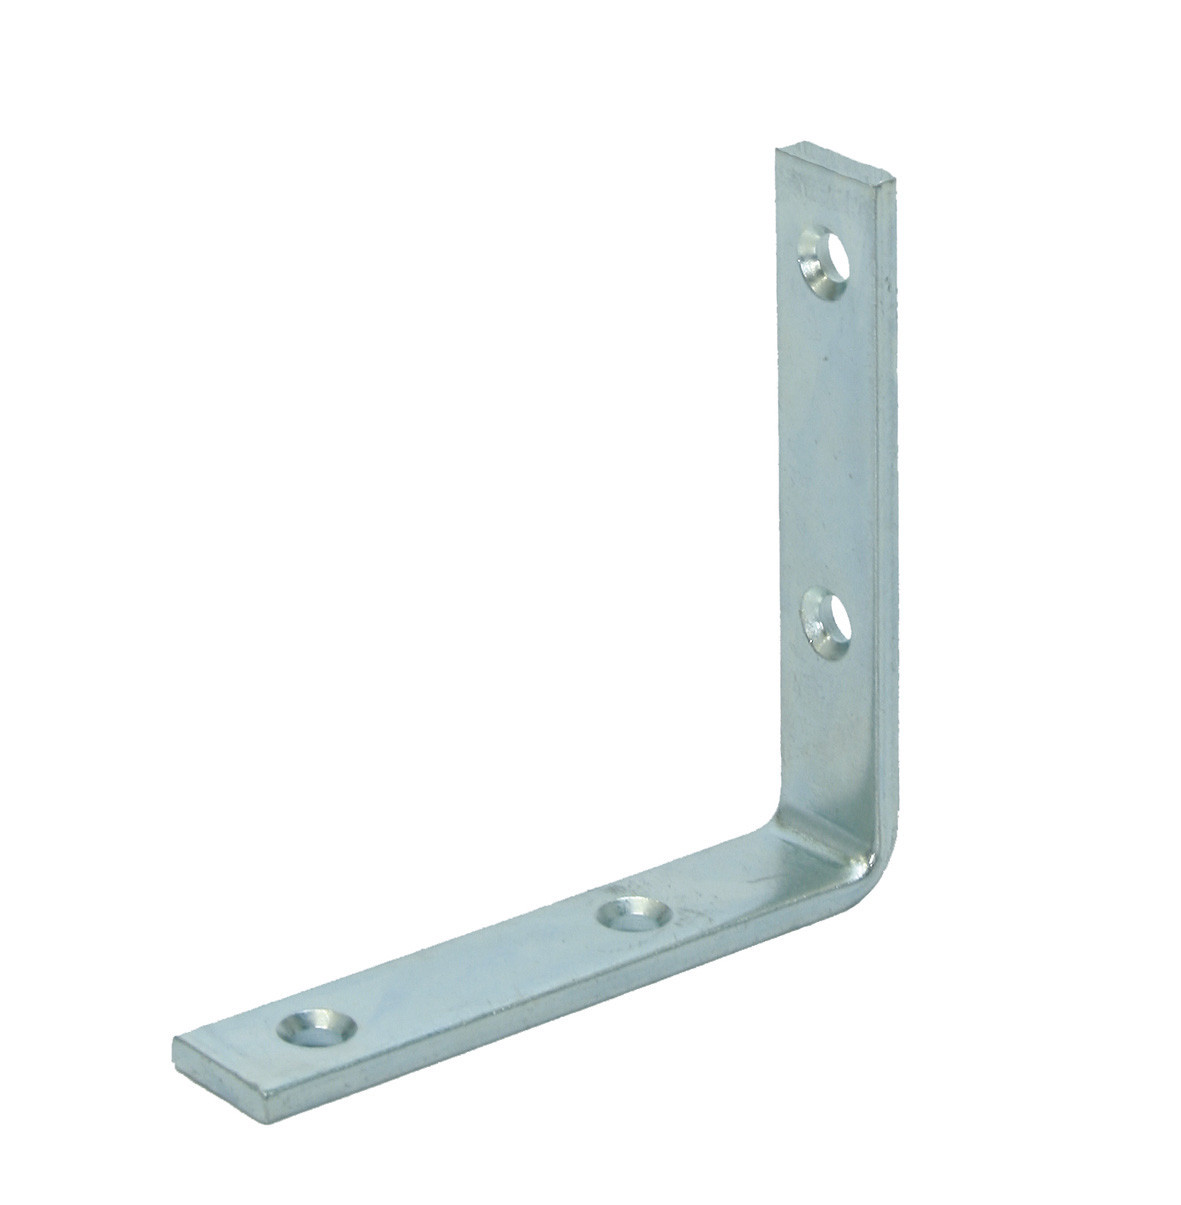 Angle bracket heavy duty 150x150 25x5 EV